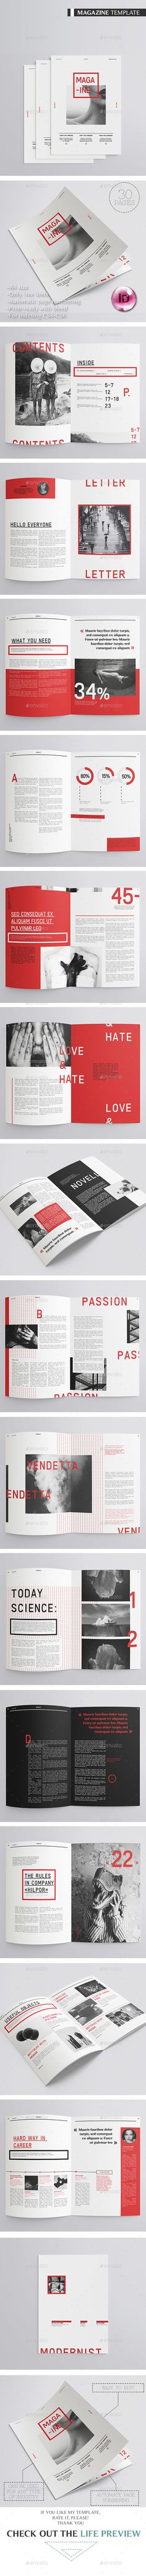 30 Pages Modernist Magazine Template InDesign INDD. Download here: https://graphicriver.net/item/modernist-magazine-30-pages/17348568?ref=ksioks